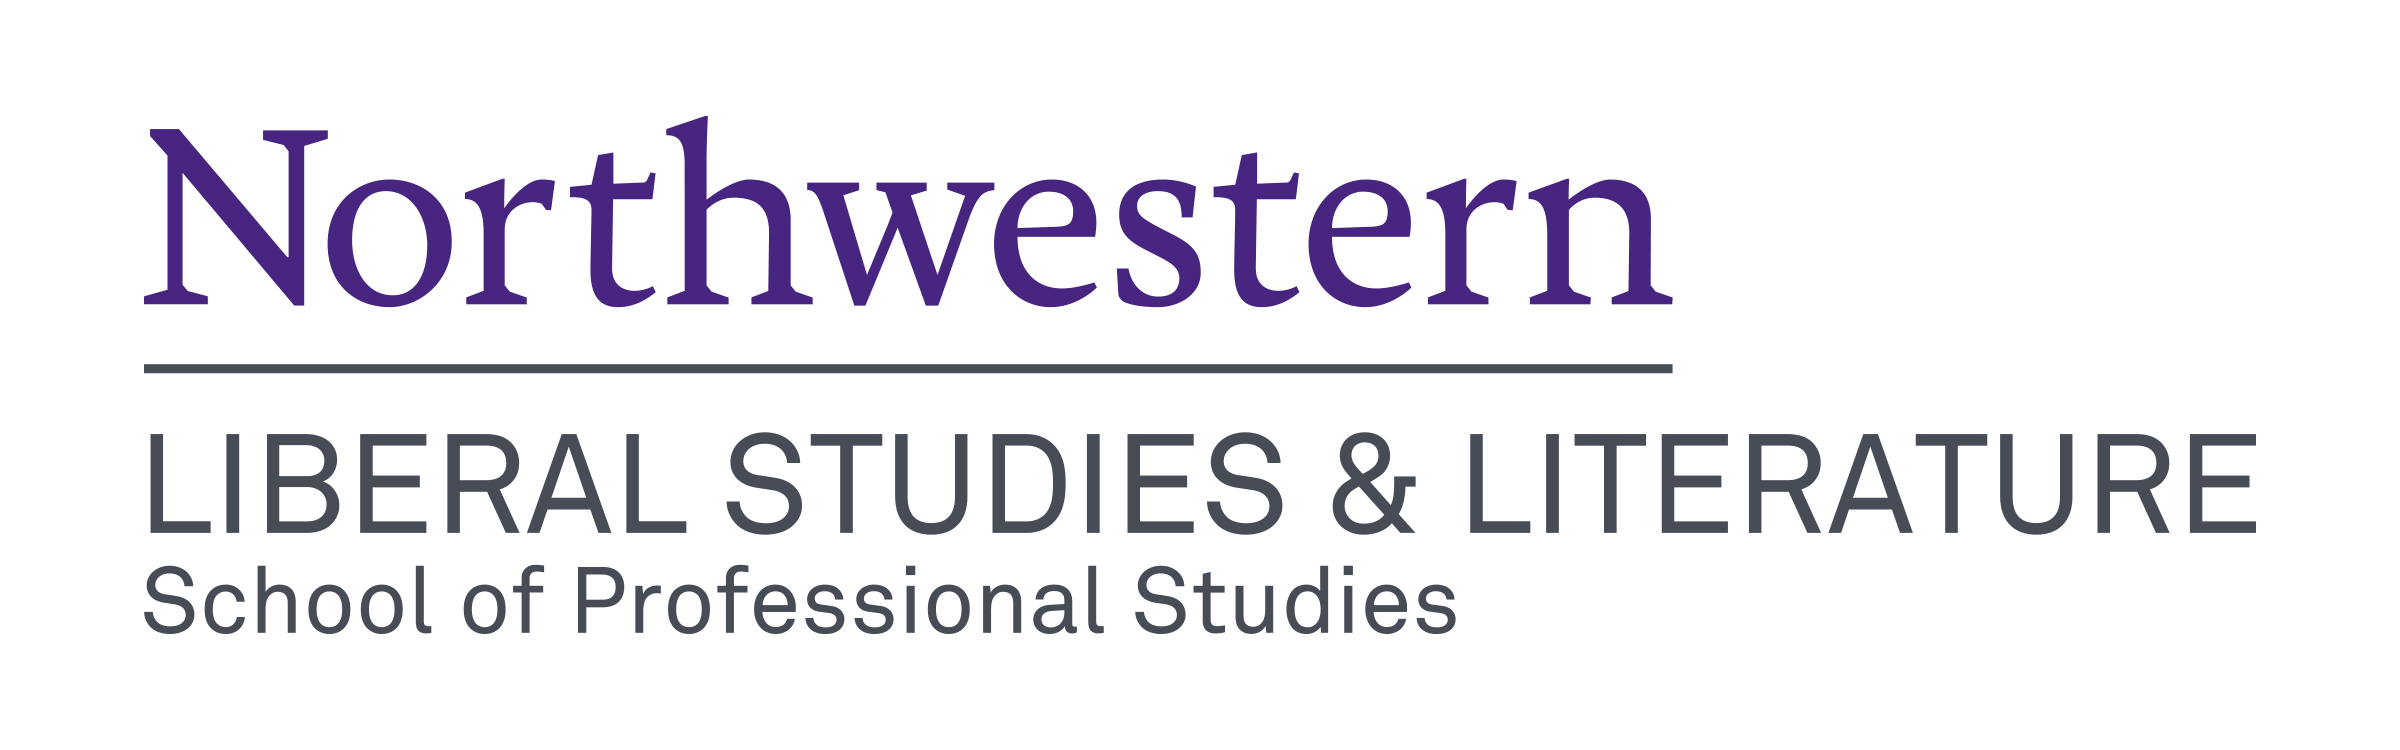 Northwestern Liberal Studies & Literature SPS